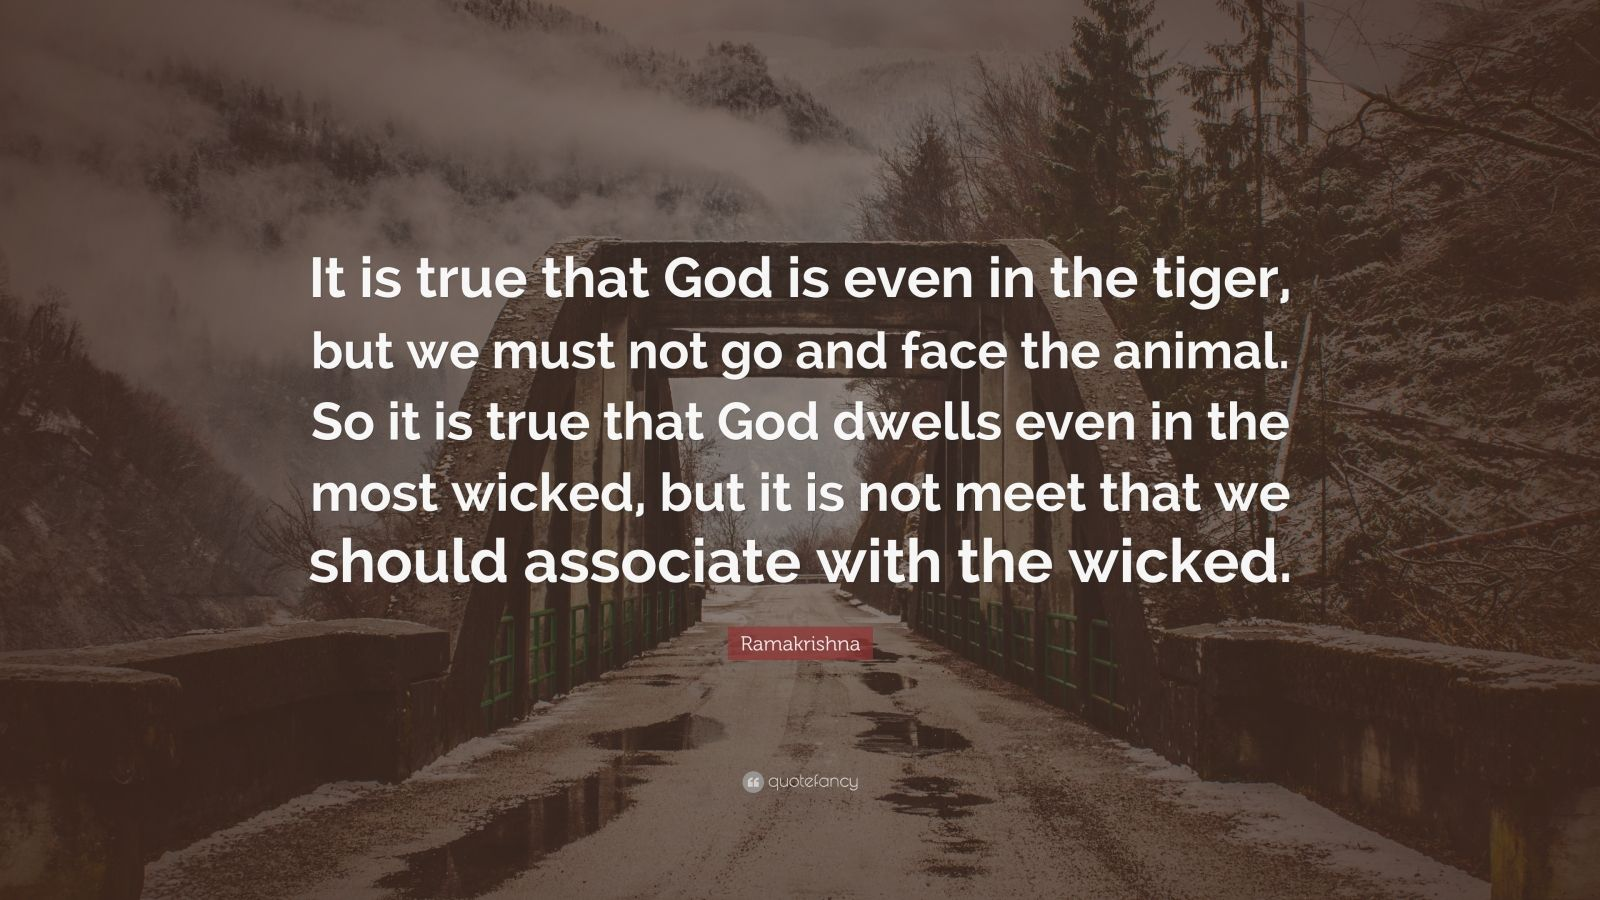 """Ramakrishna Quote: """"It is true that God is even in the tiger, but we must not go and face the animal. So it is true that God dwells even in the most wicked, but it is not meet that we should associate with the wicked."""""""